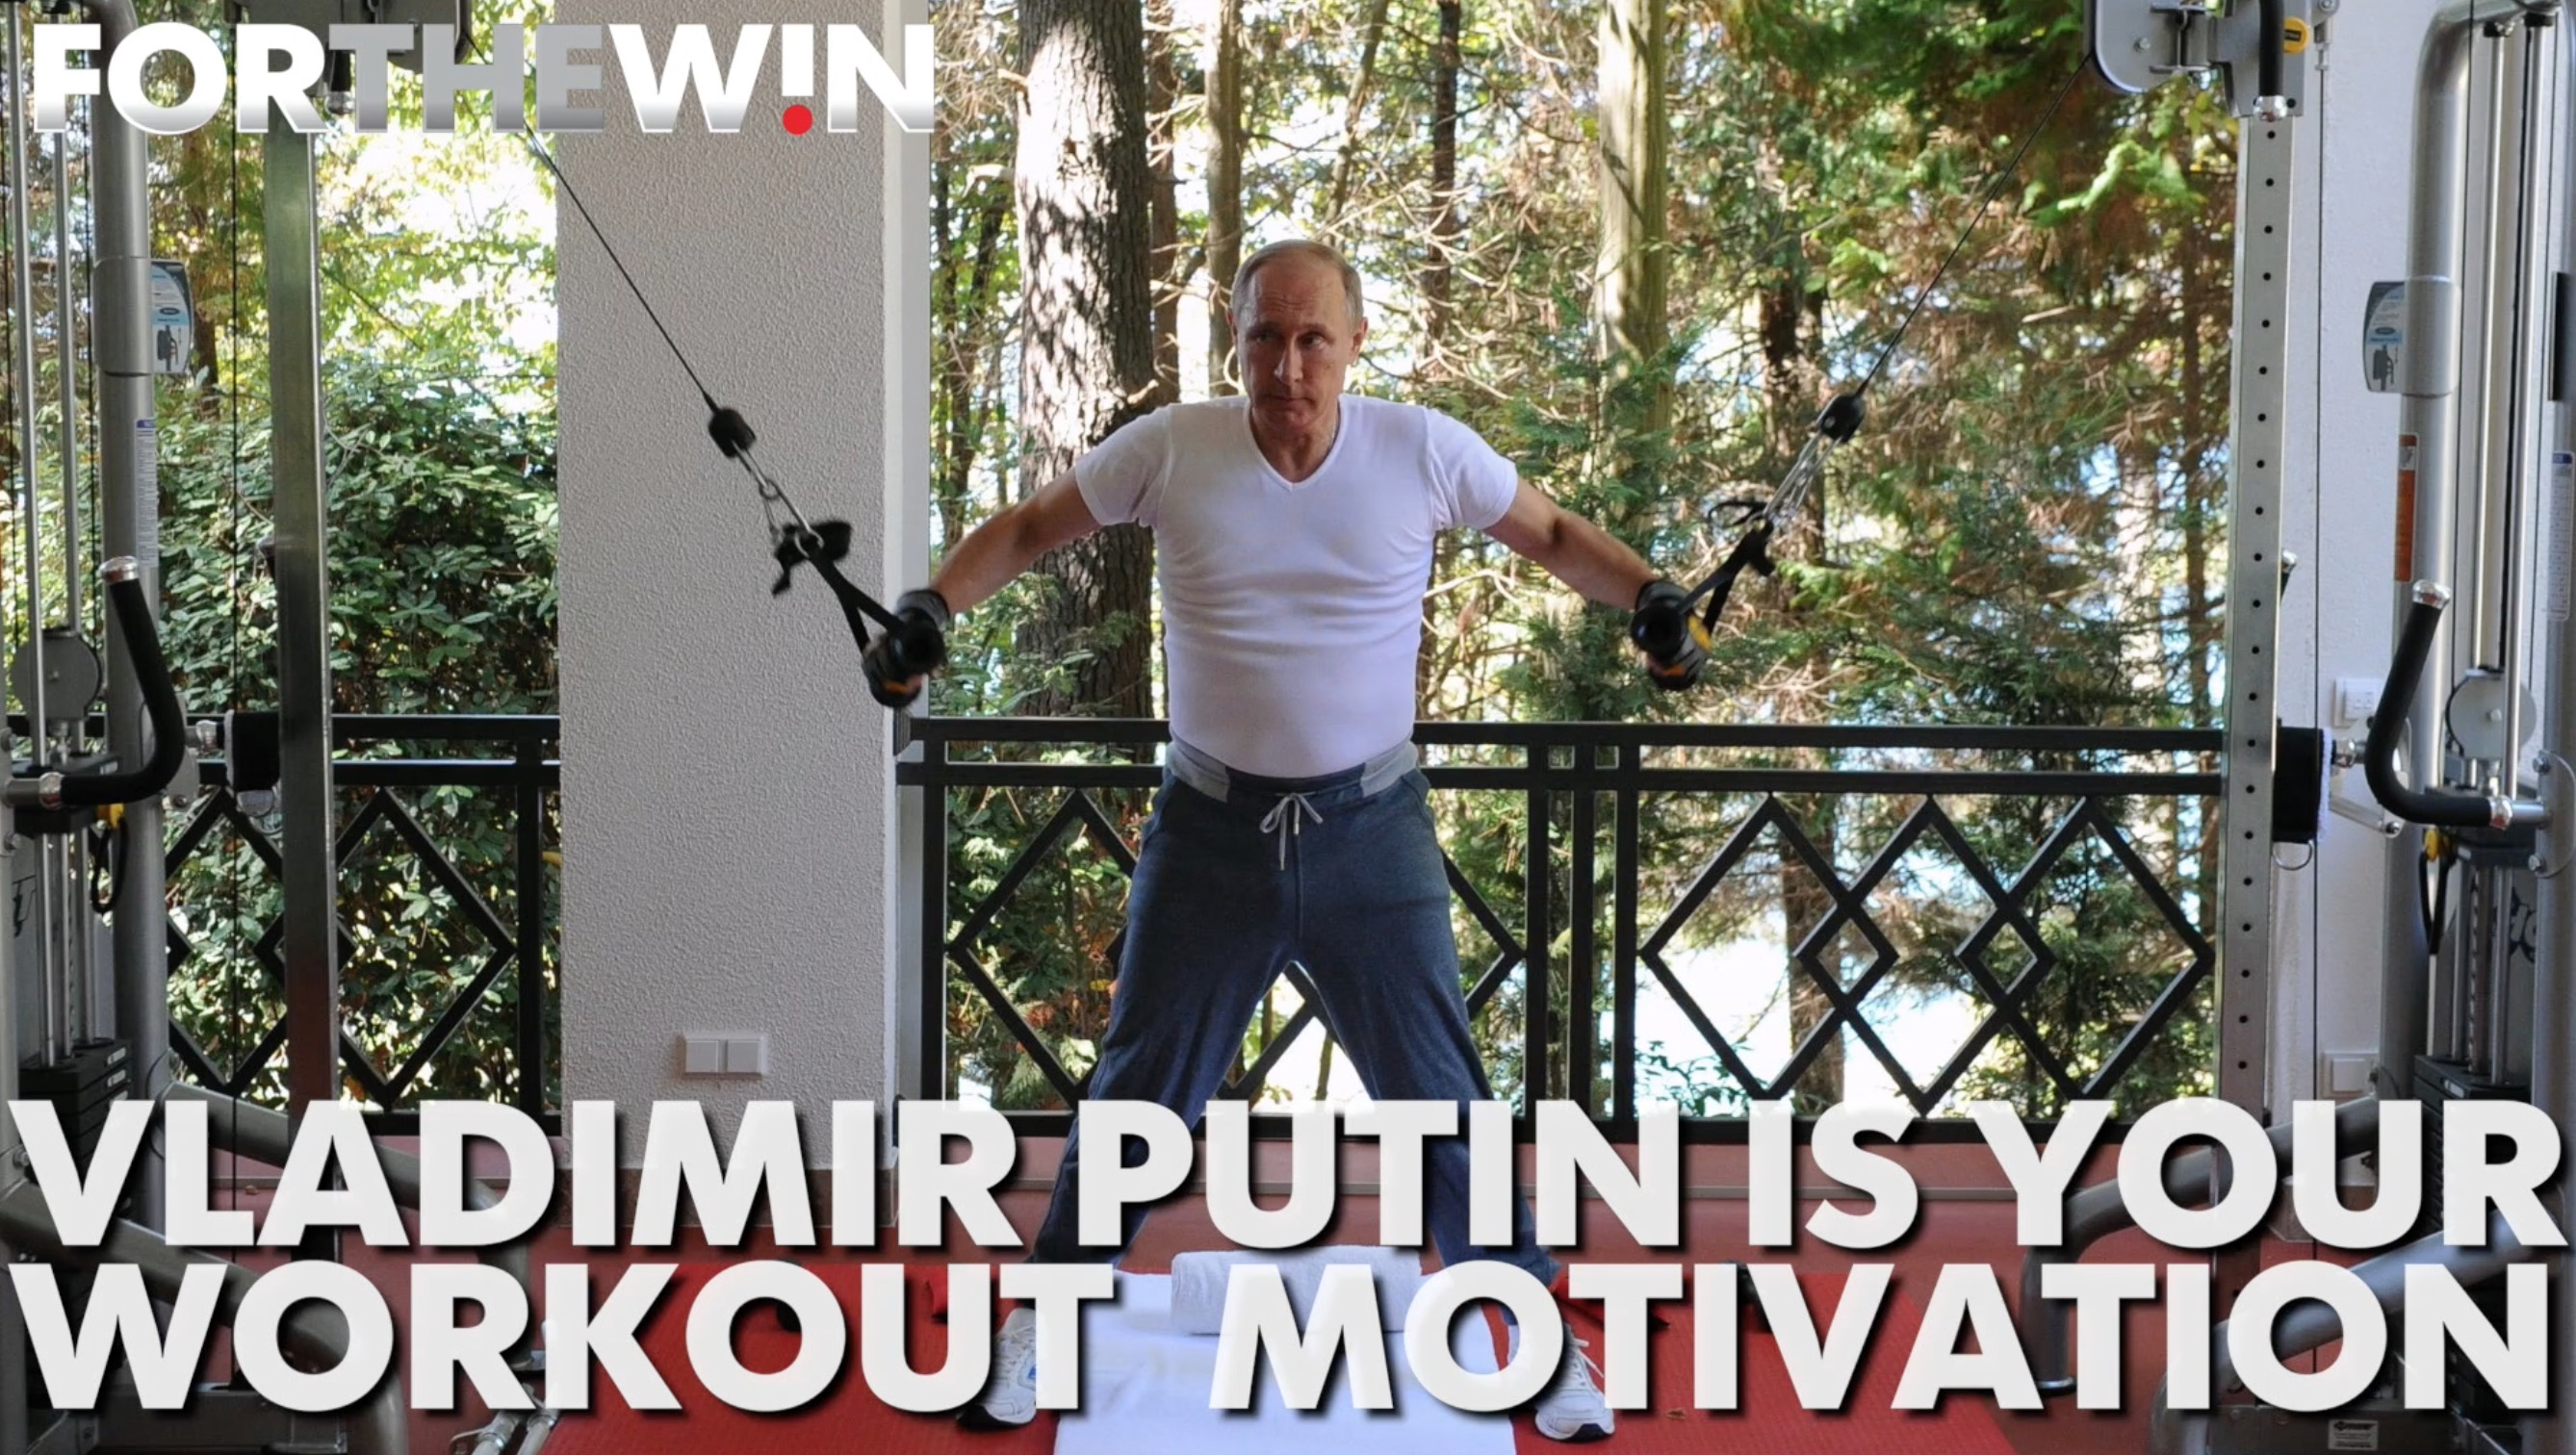 Vladimir Putin is your workout motivation